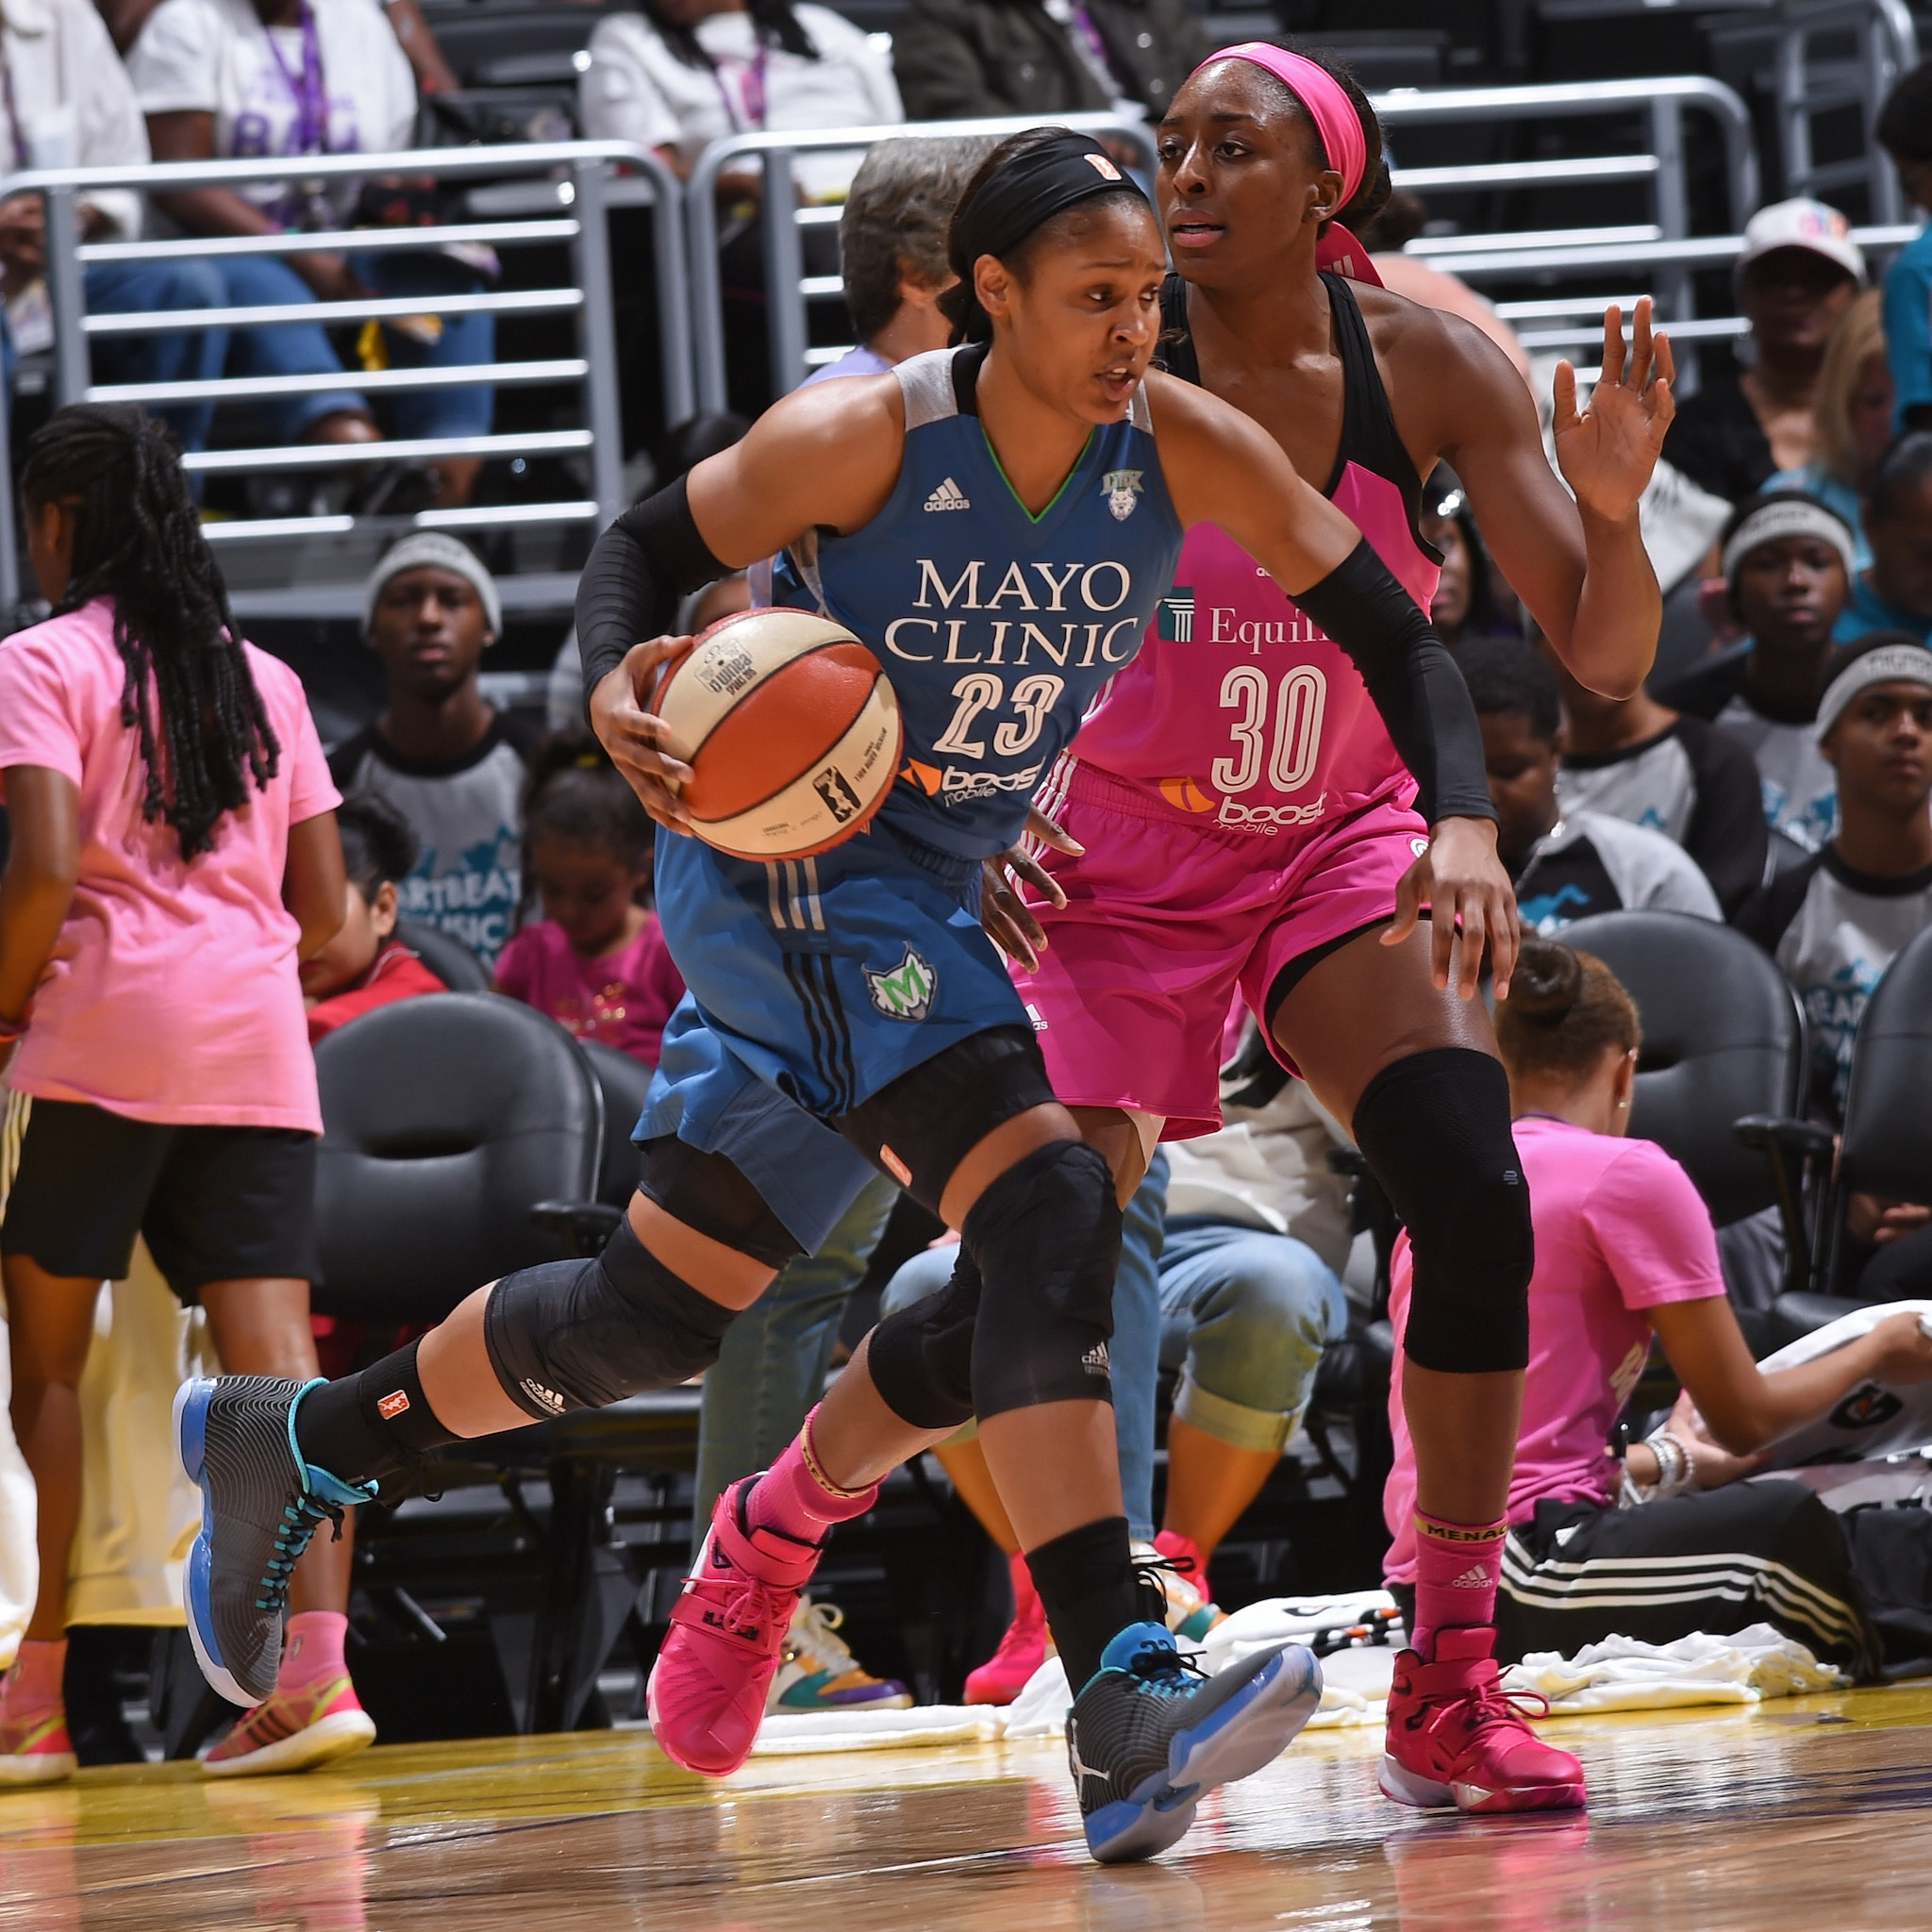 Lynx forward Maya Moore led her team into Los Angeles for the third meeting between these two teams this season. Unfortunately, the Lynx suffered their first loss of the season to the Sparks, falling 83-61. Moore finished tied for a team-high 13 points to go with her five rebounds and two blocked shots.